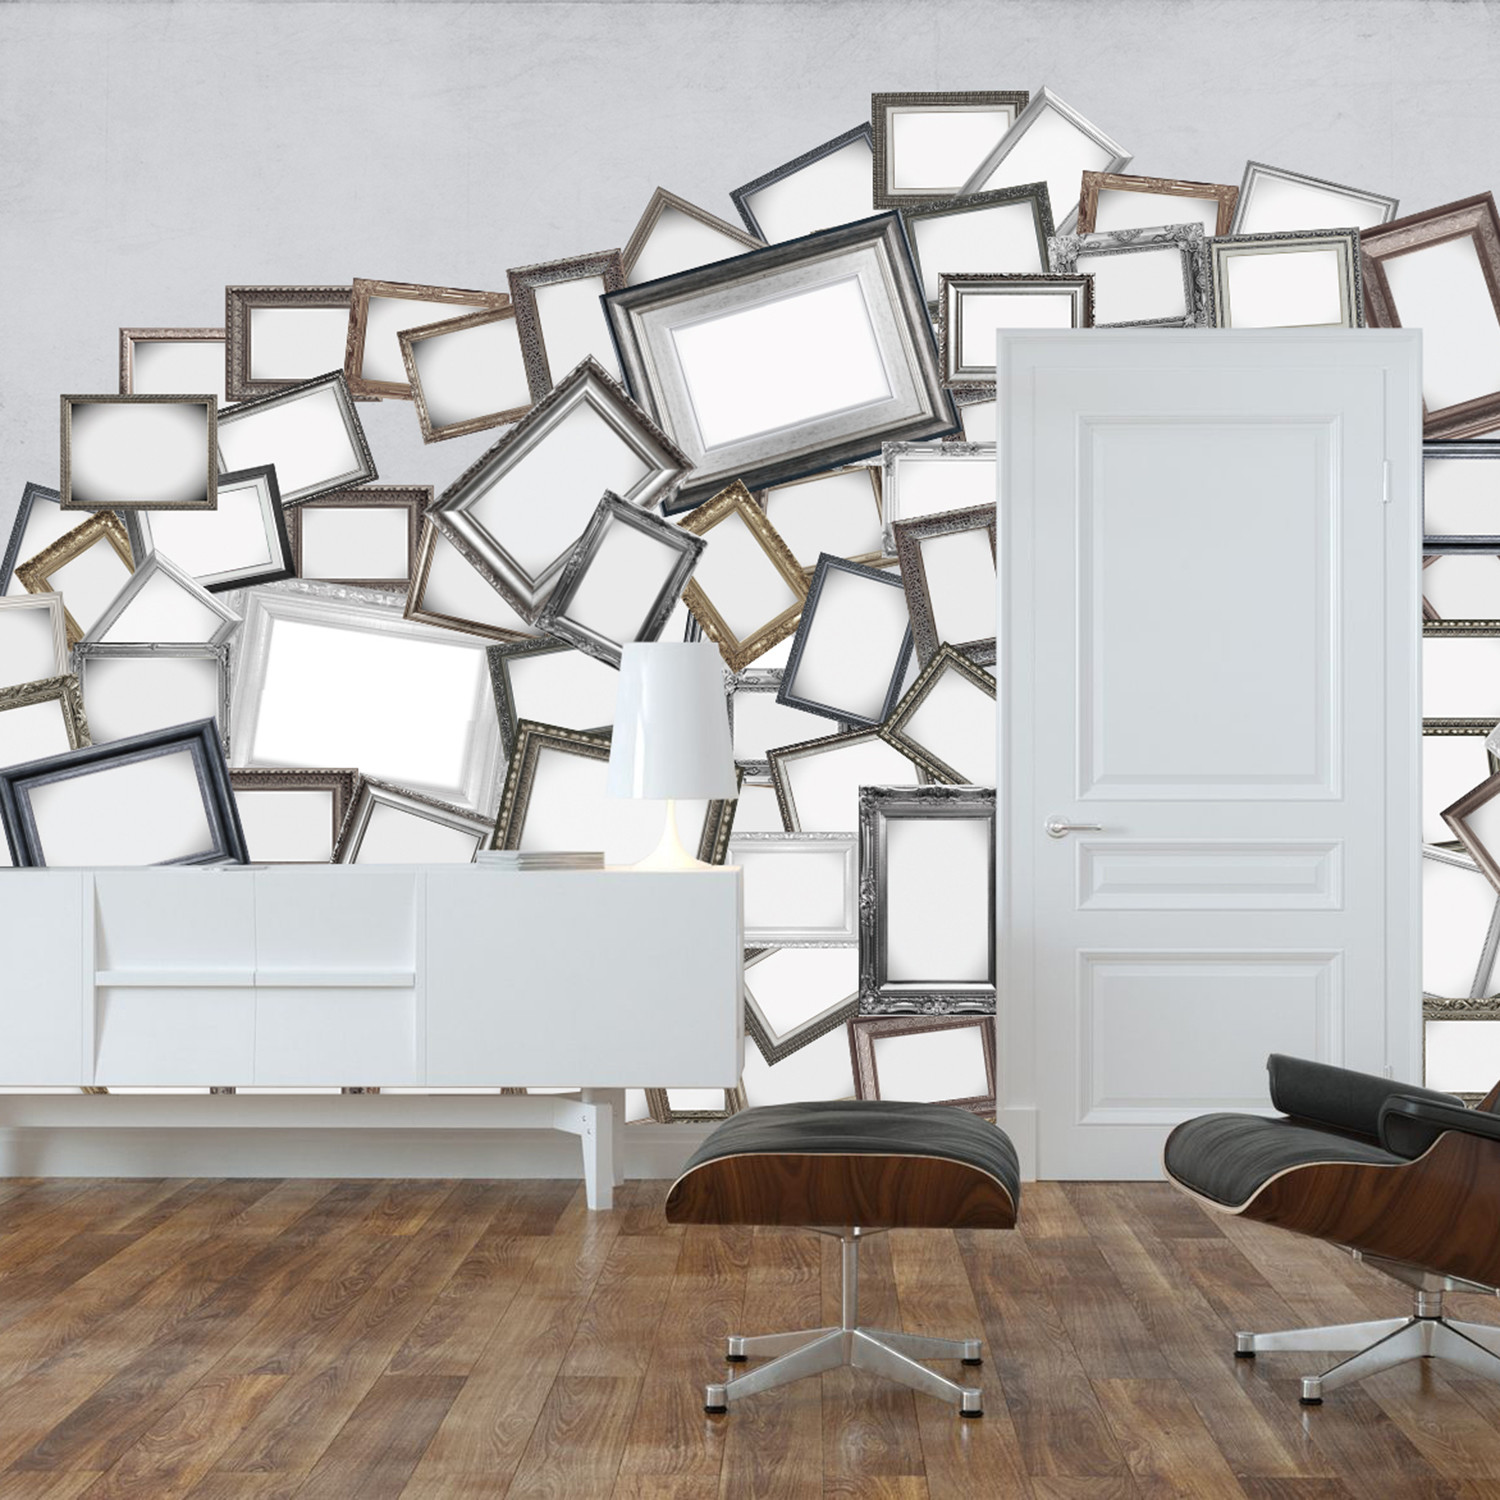 Creative Collage // Frames - 1 Wall Murals - Touch of Modern